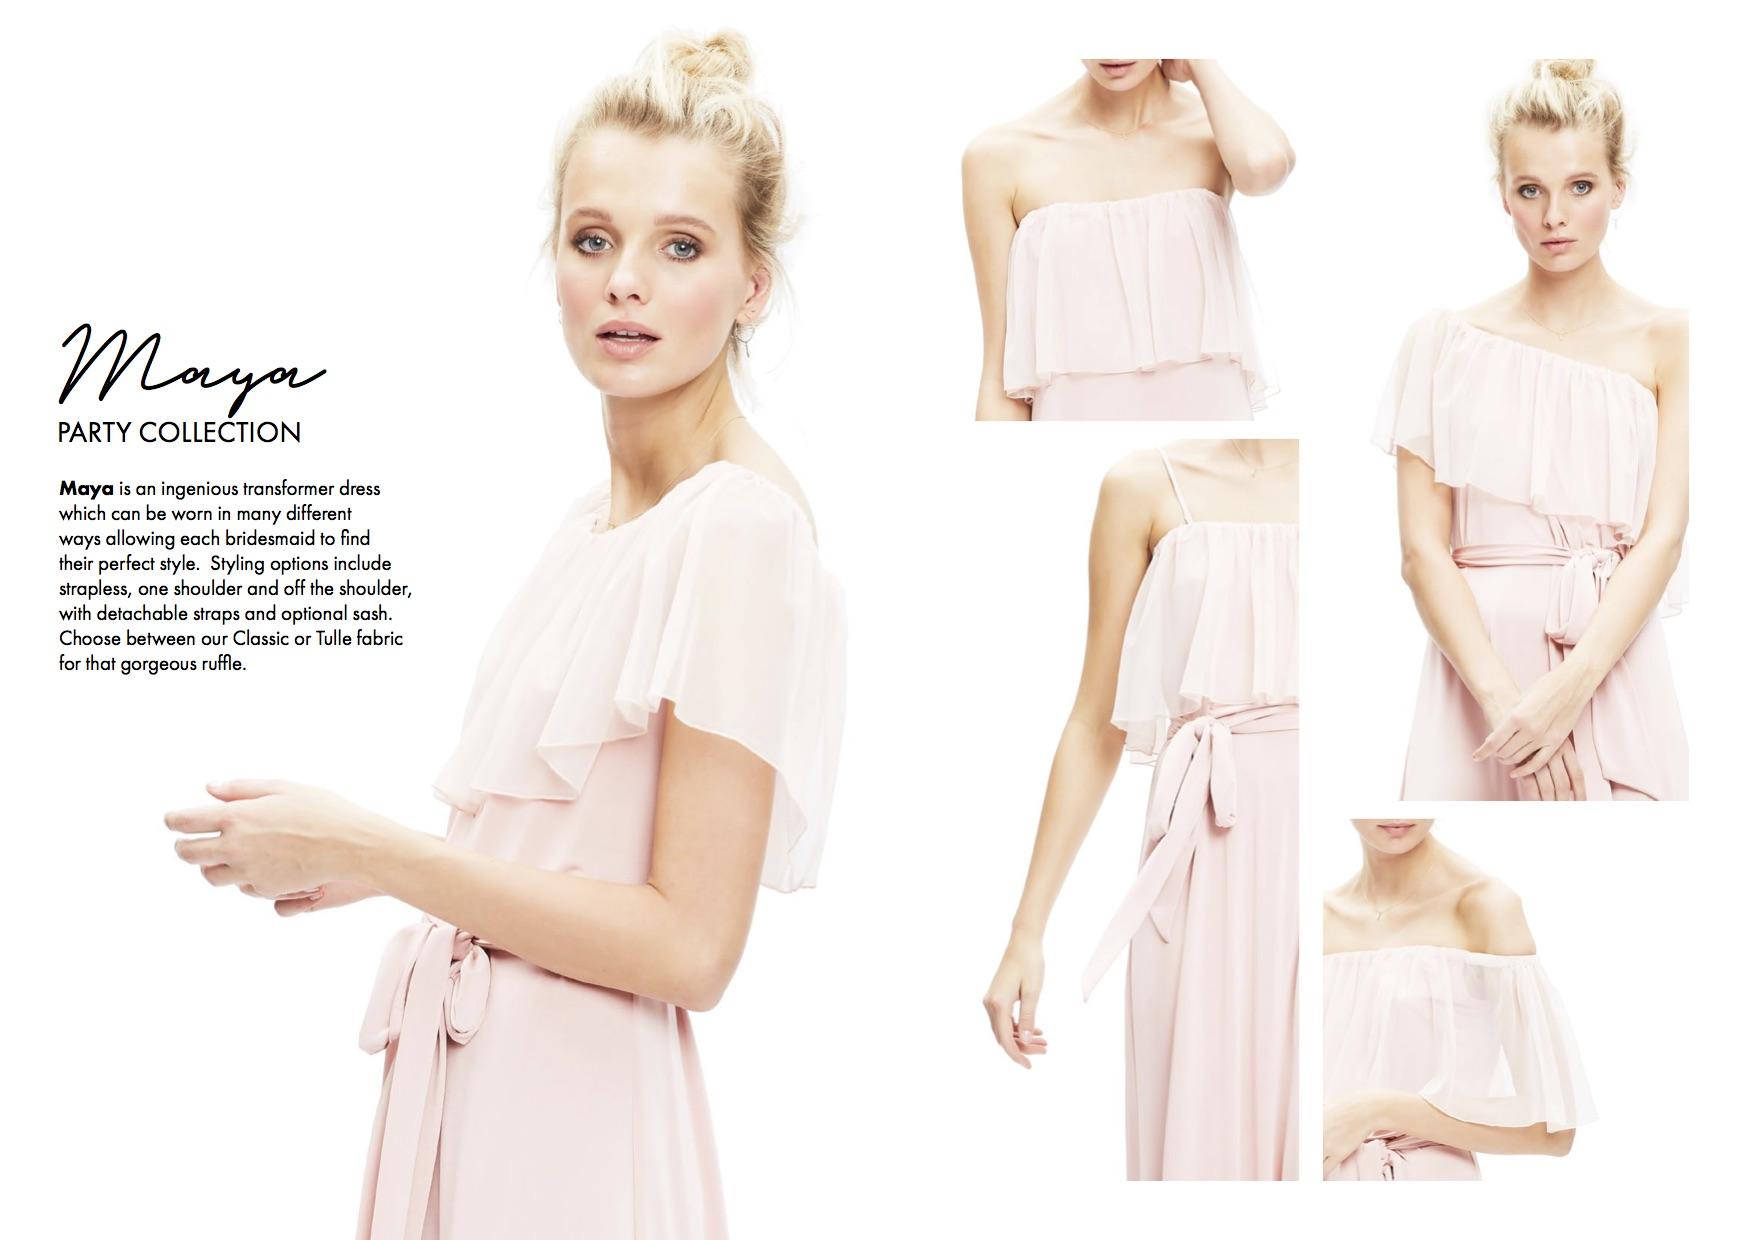 Maya | Twobirds bridesmaid | Party Collection | Bridesmaids dresses | Luxury wedding planner Lamare London